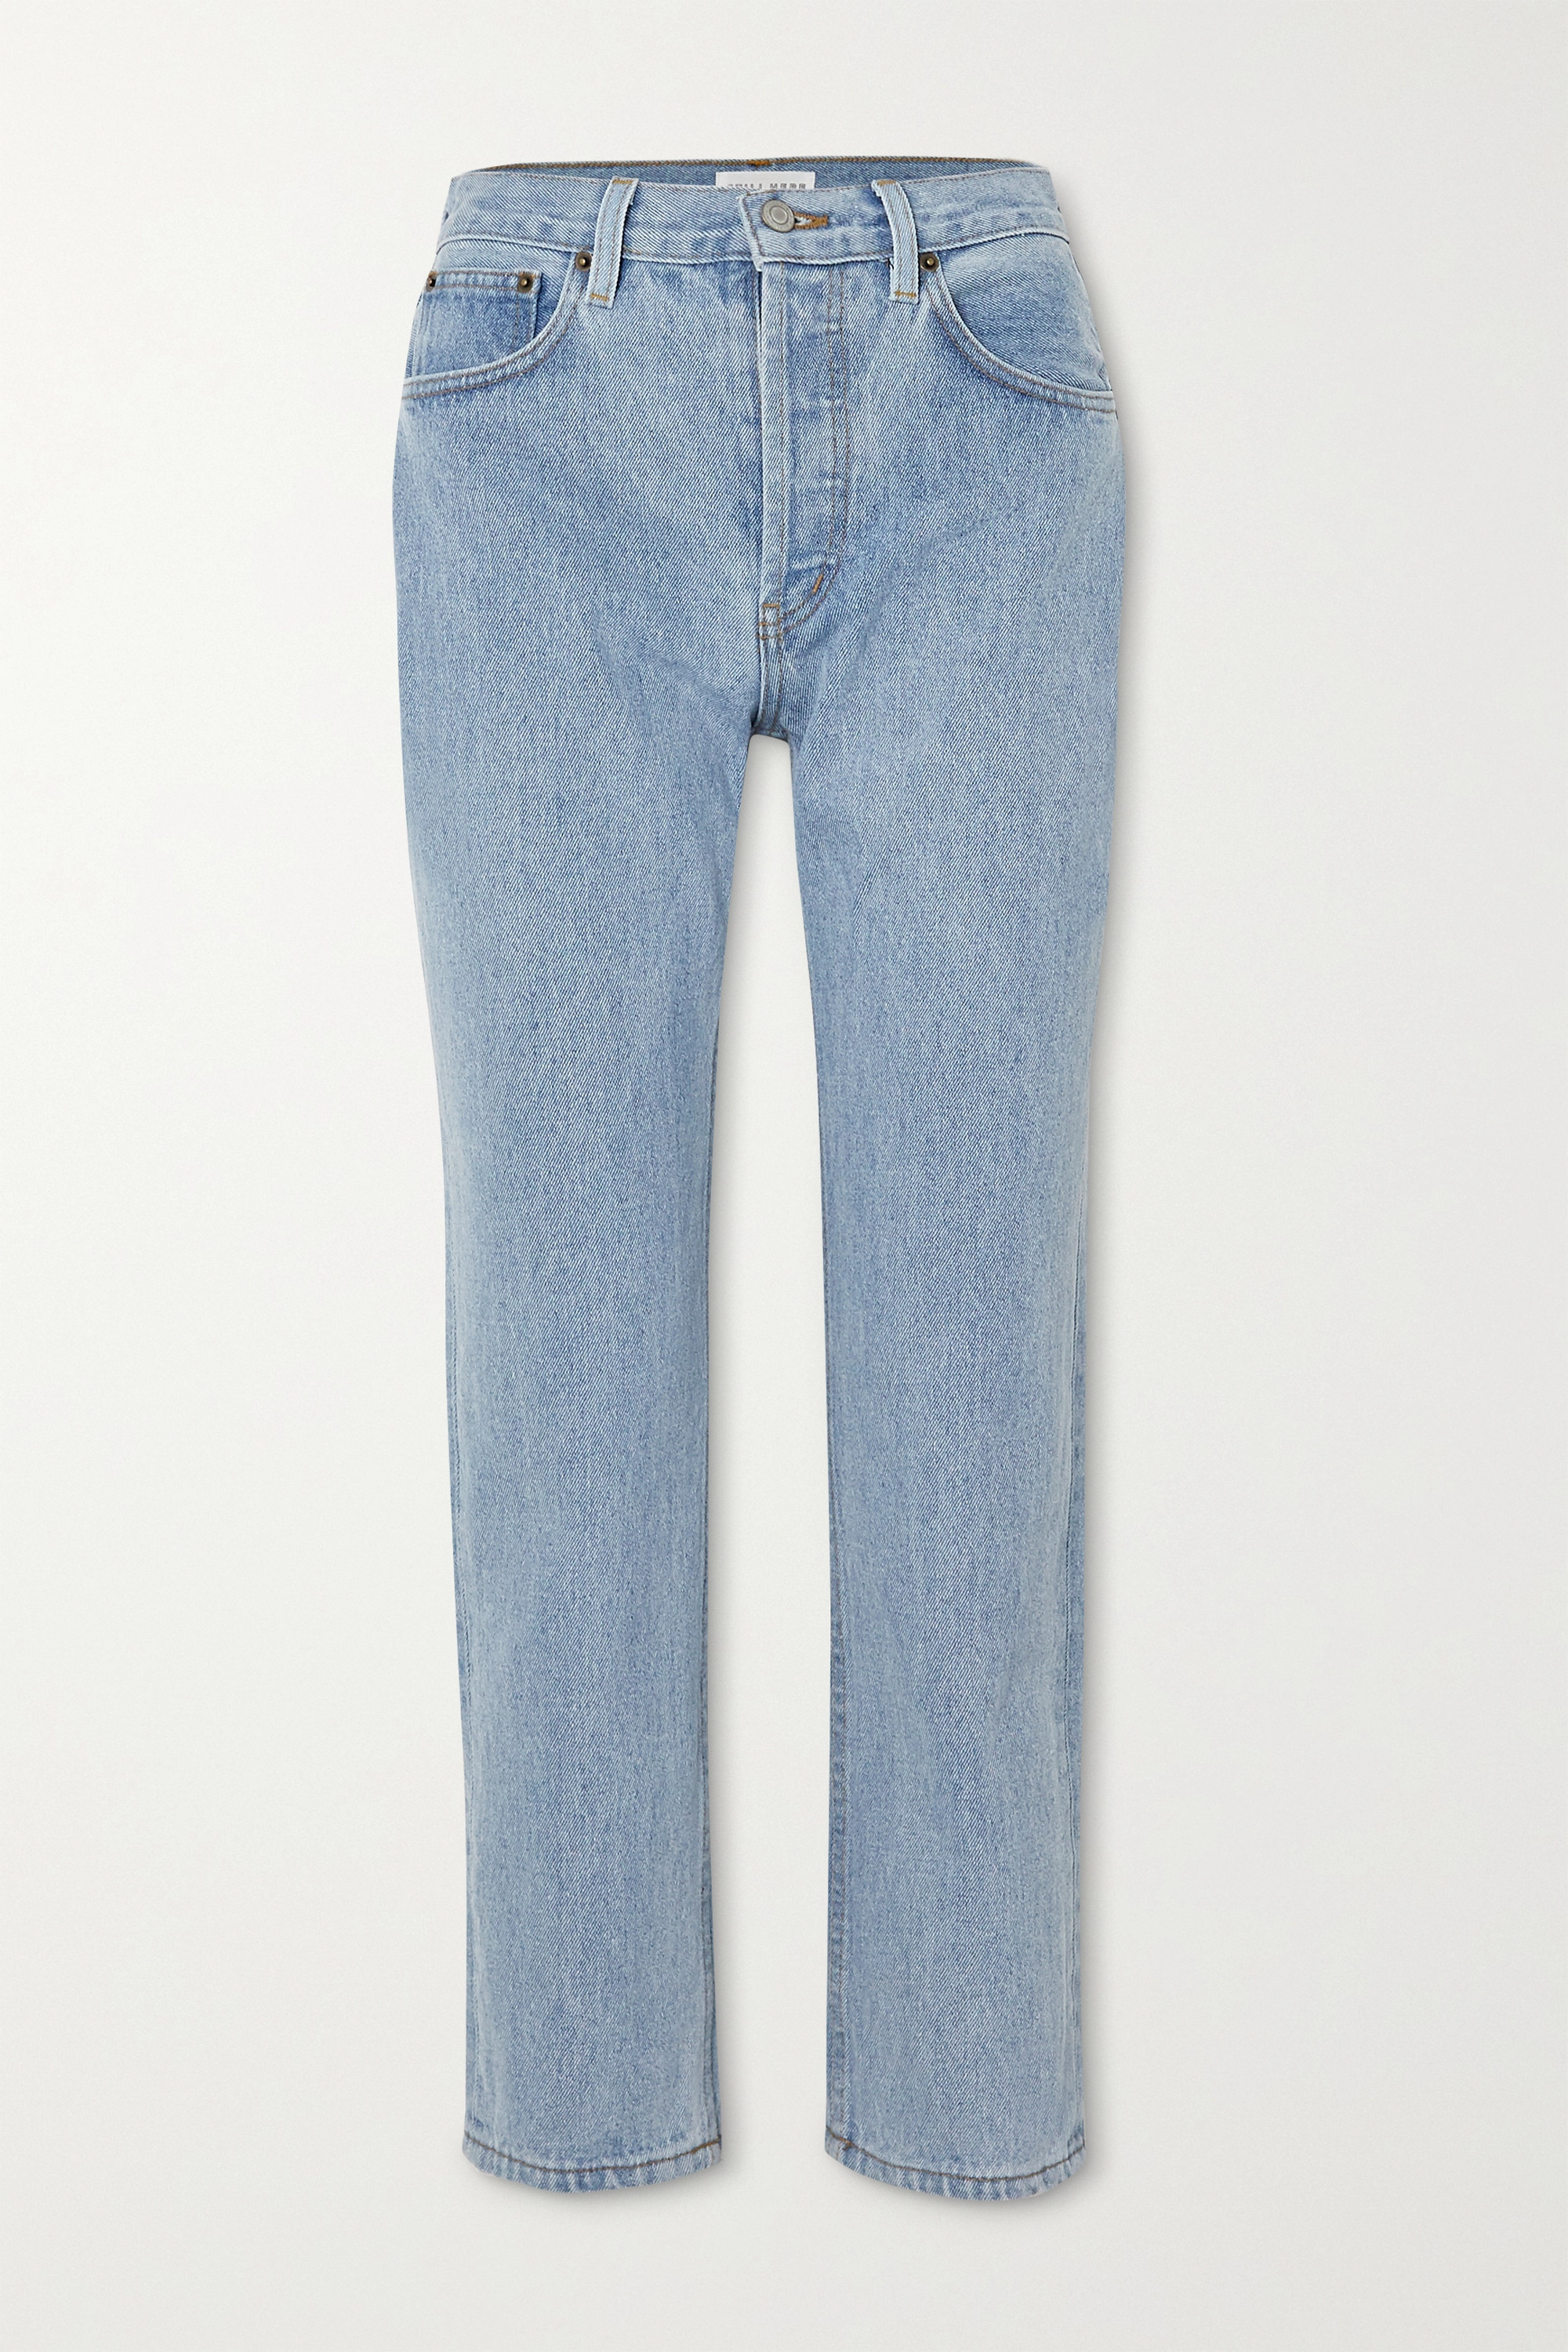 STILL HERE Tate cropped high-rise straight-leg jeans